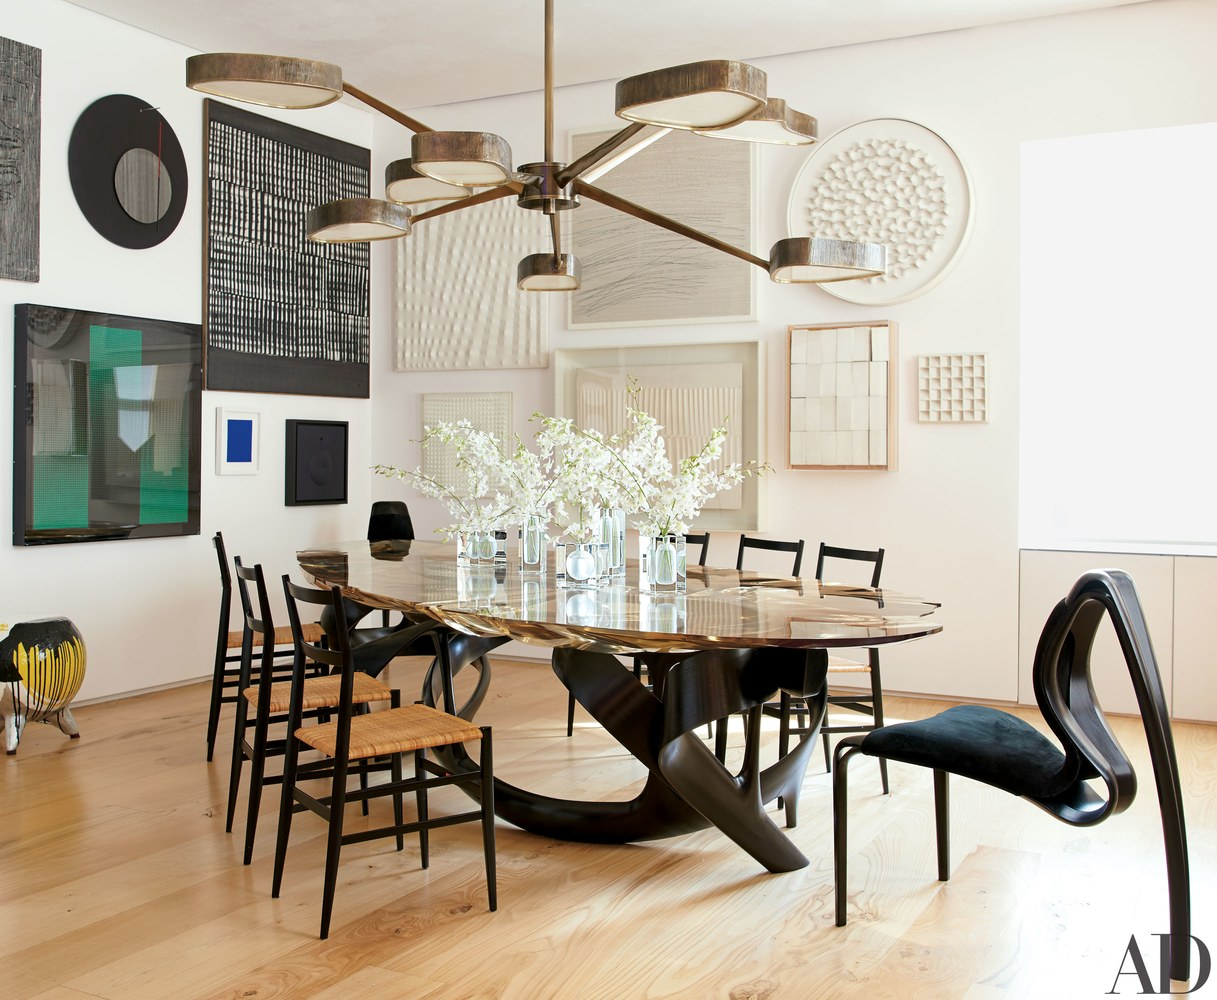 dining tables Stylish Dining Tables That Fit A Whole Family 60 Modern Dining Room Design Ideas10 1